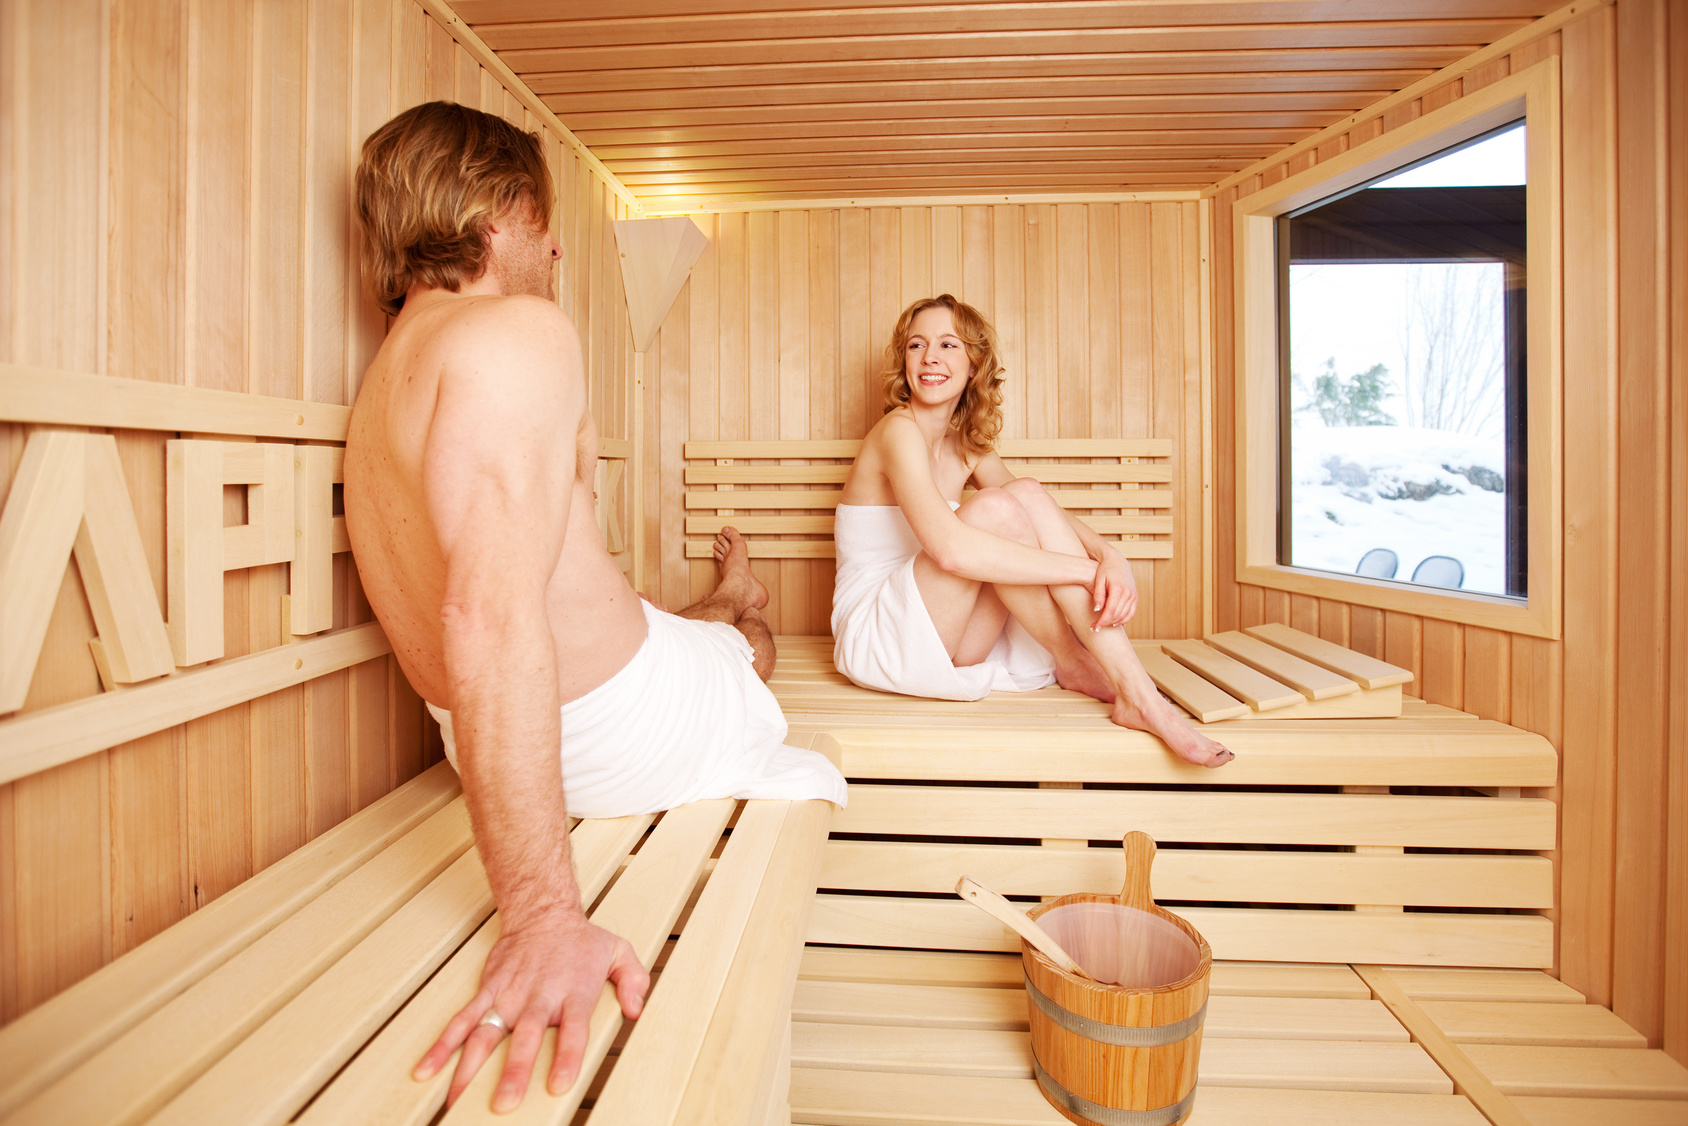 Why Heat is Good For the Heart: The Benefits of Going to the Sauna